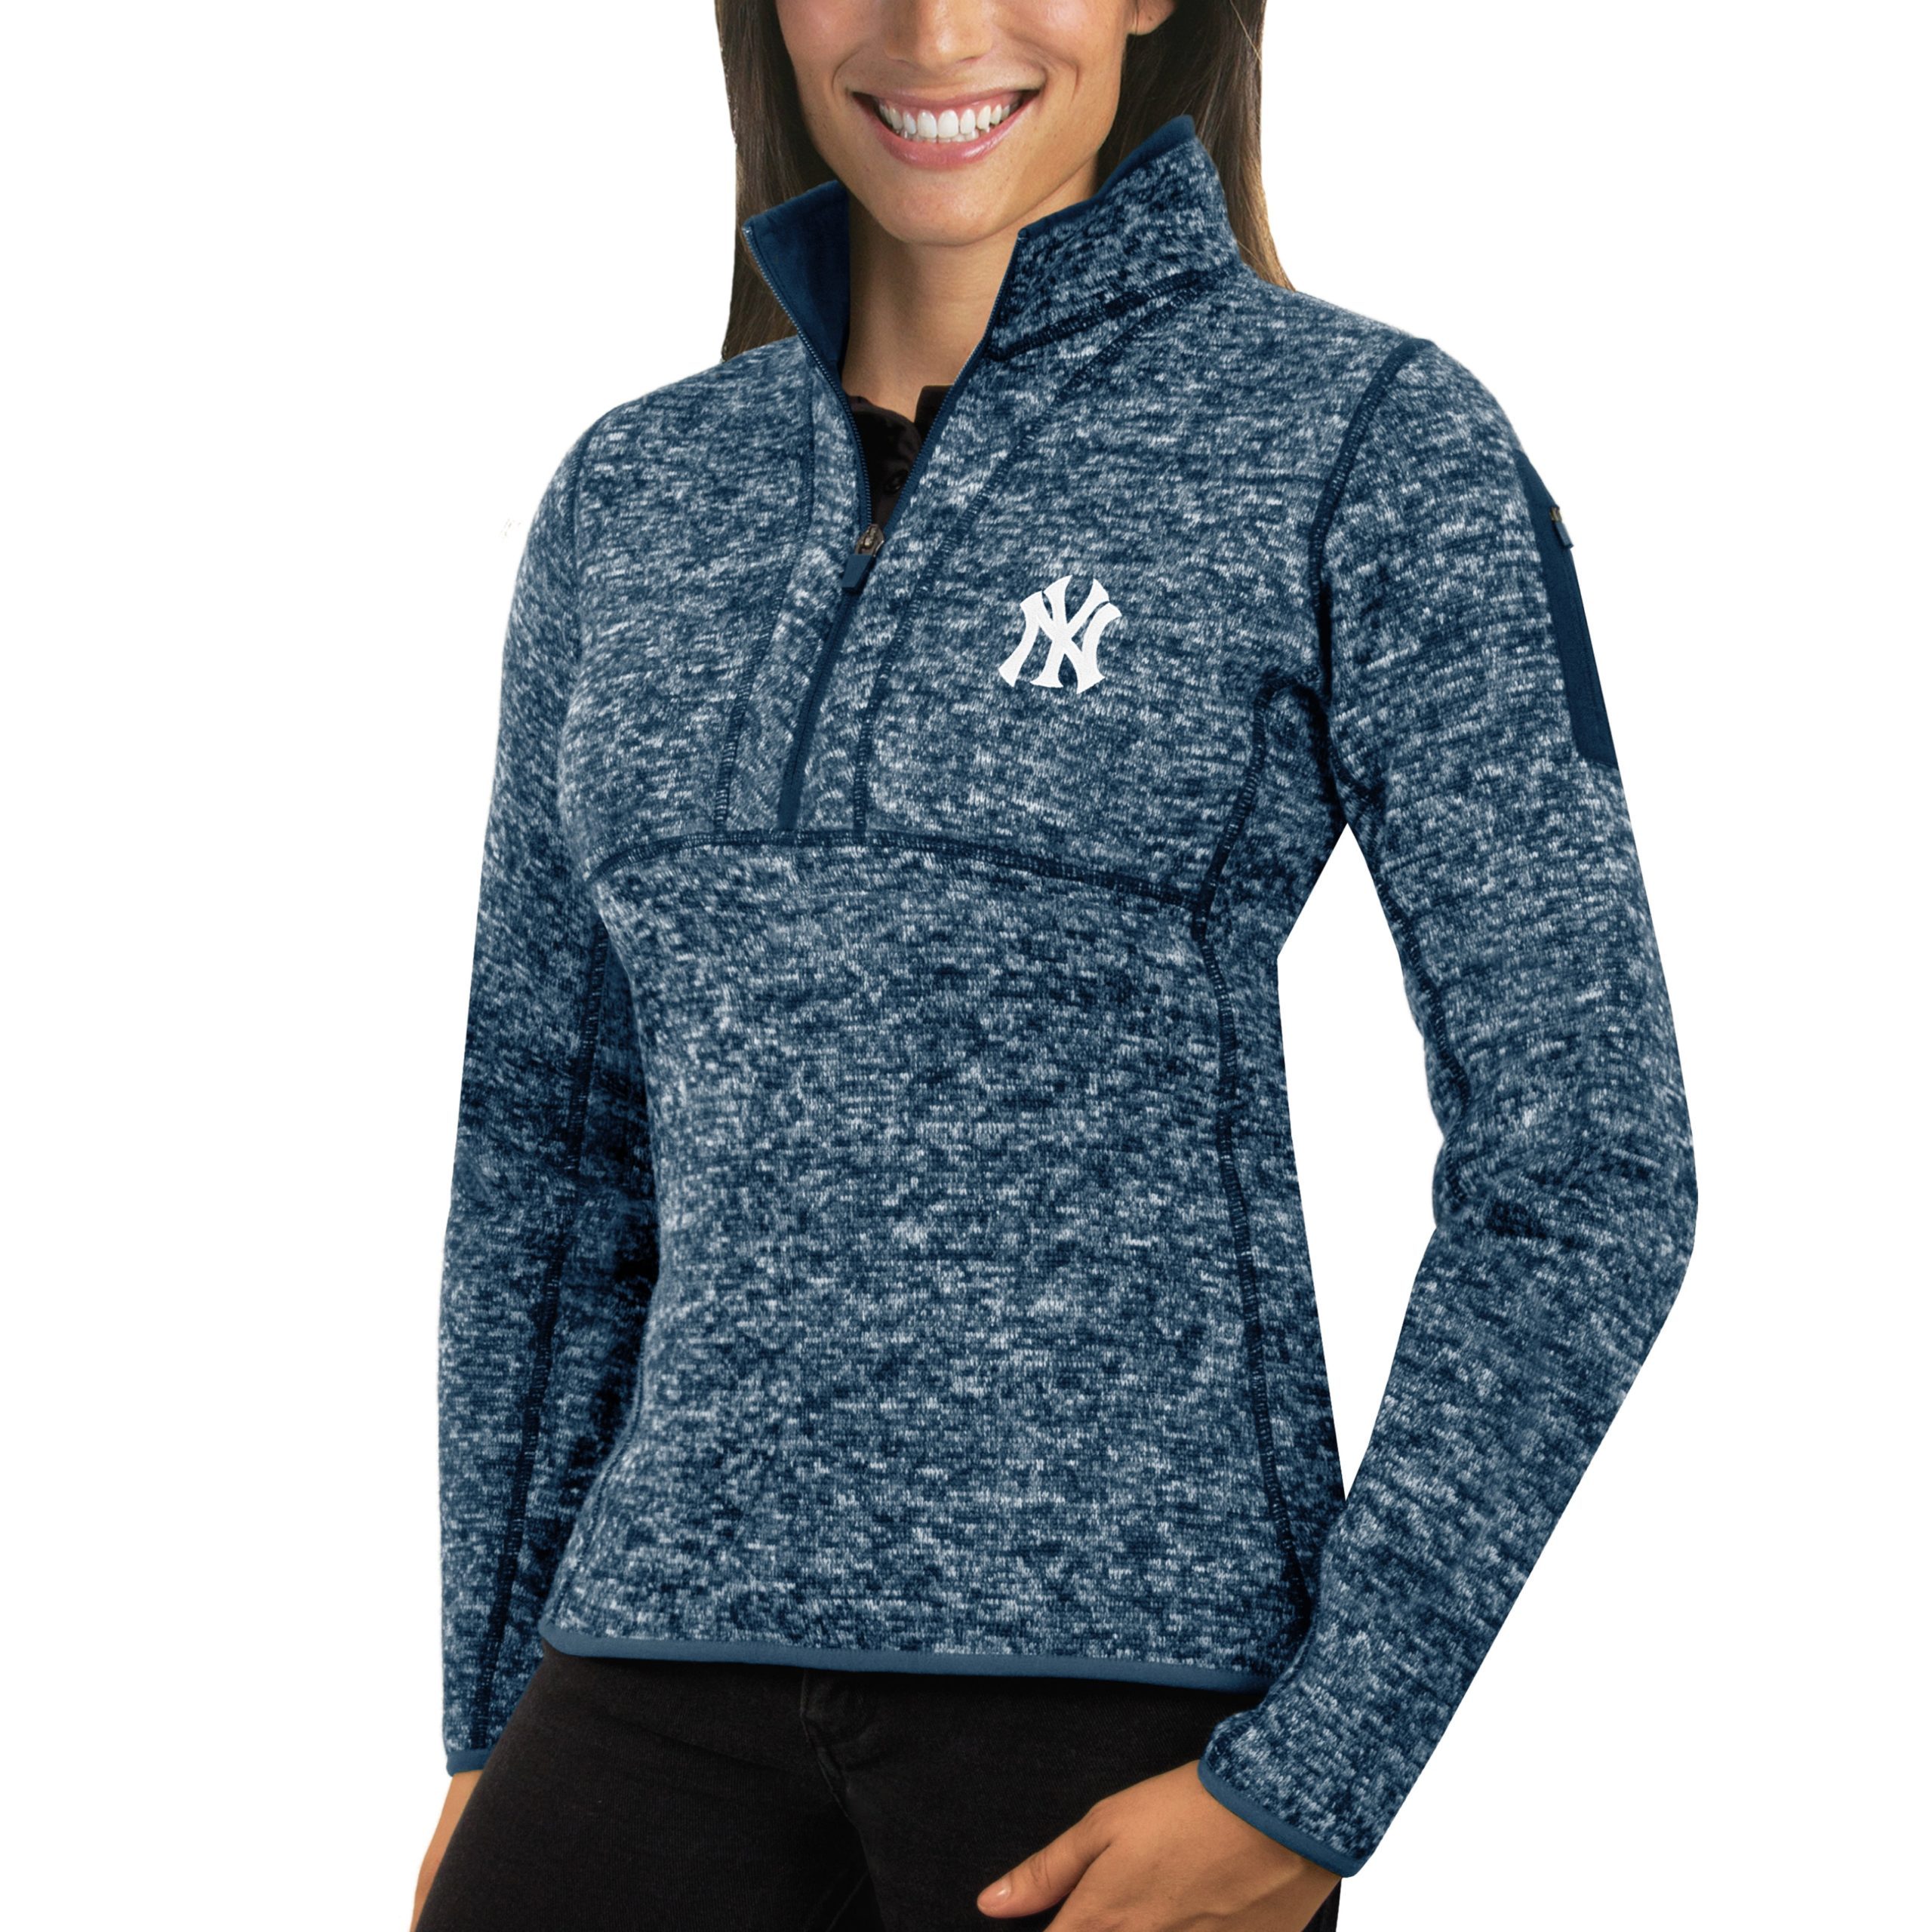 New York Yankees Antigua Women's Fortune Half-Zip Pullover Sweater - Heathered Navy